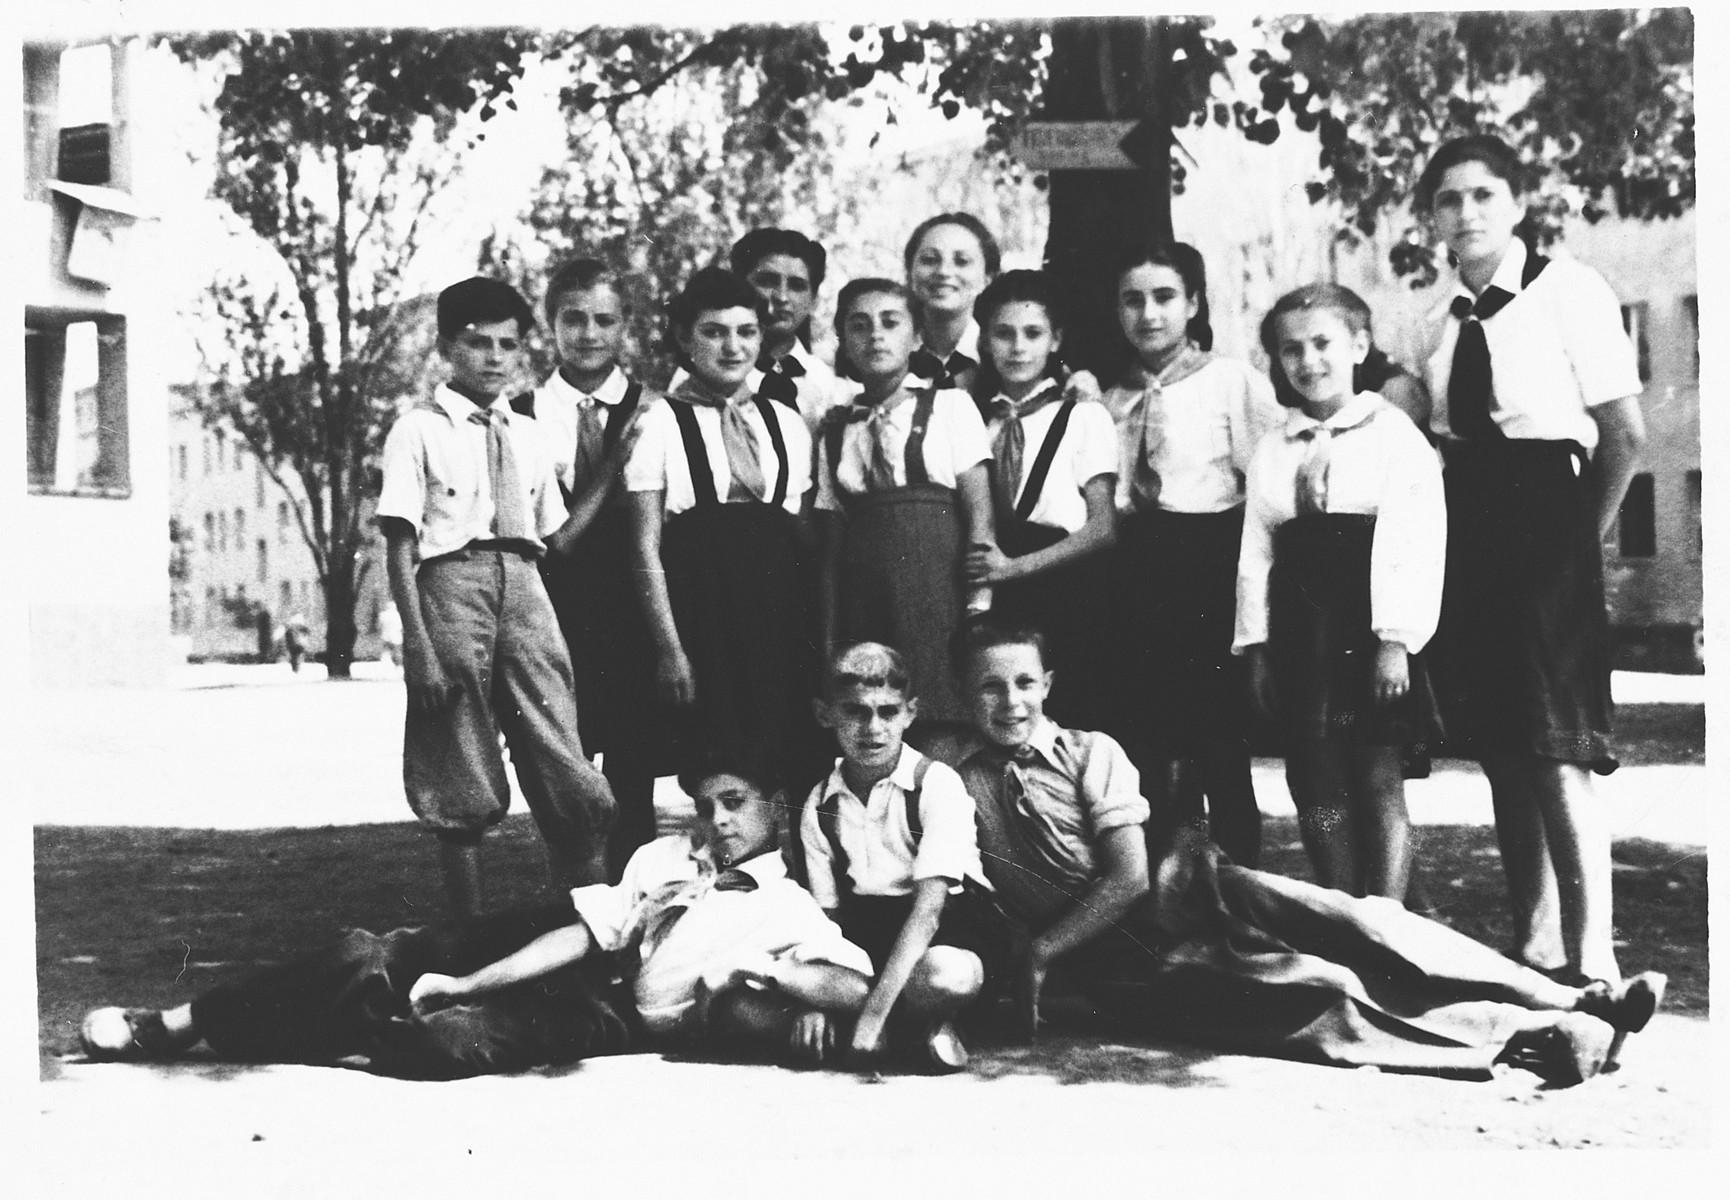 Members of Hashomer Hatzair Zionist youth movement in the Tempelhof DP camp in Berlin.  Pictured standing, second from the right is Chuma Rendler (now Natalie Gonenn).